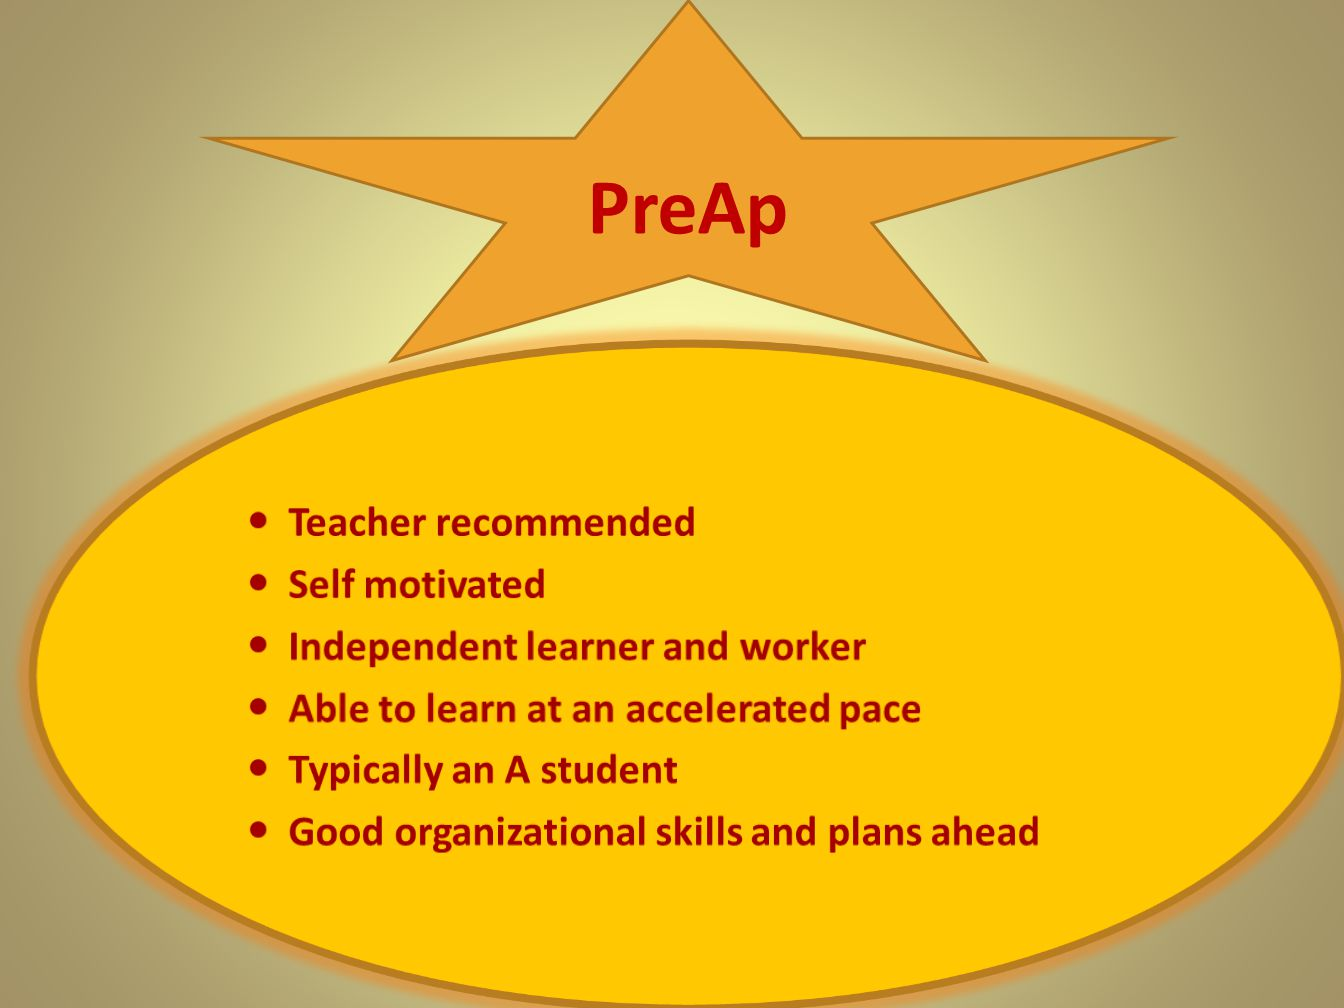 PreAp Teacher recommended Self motivated